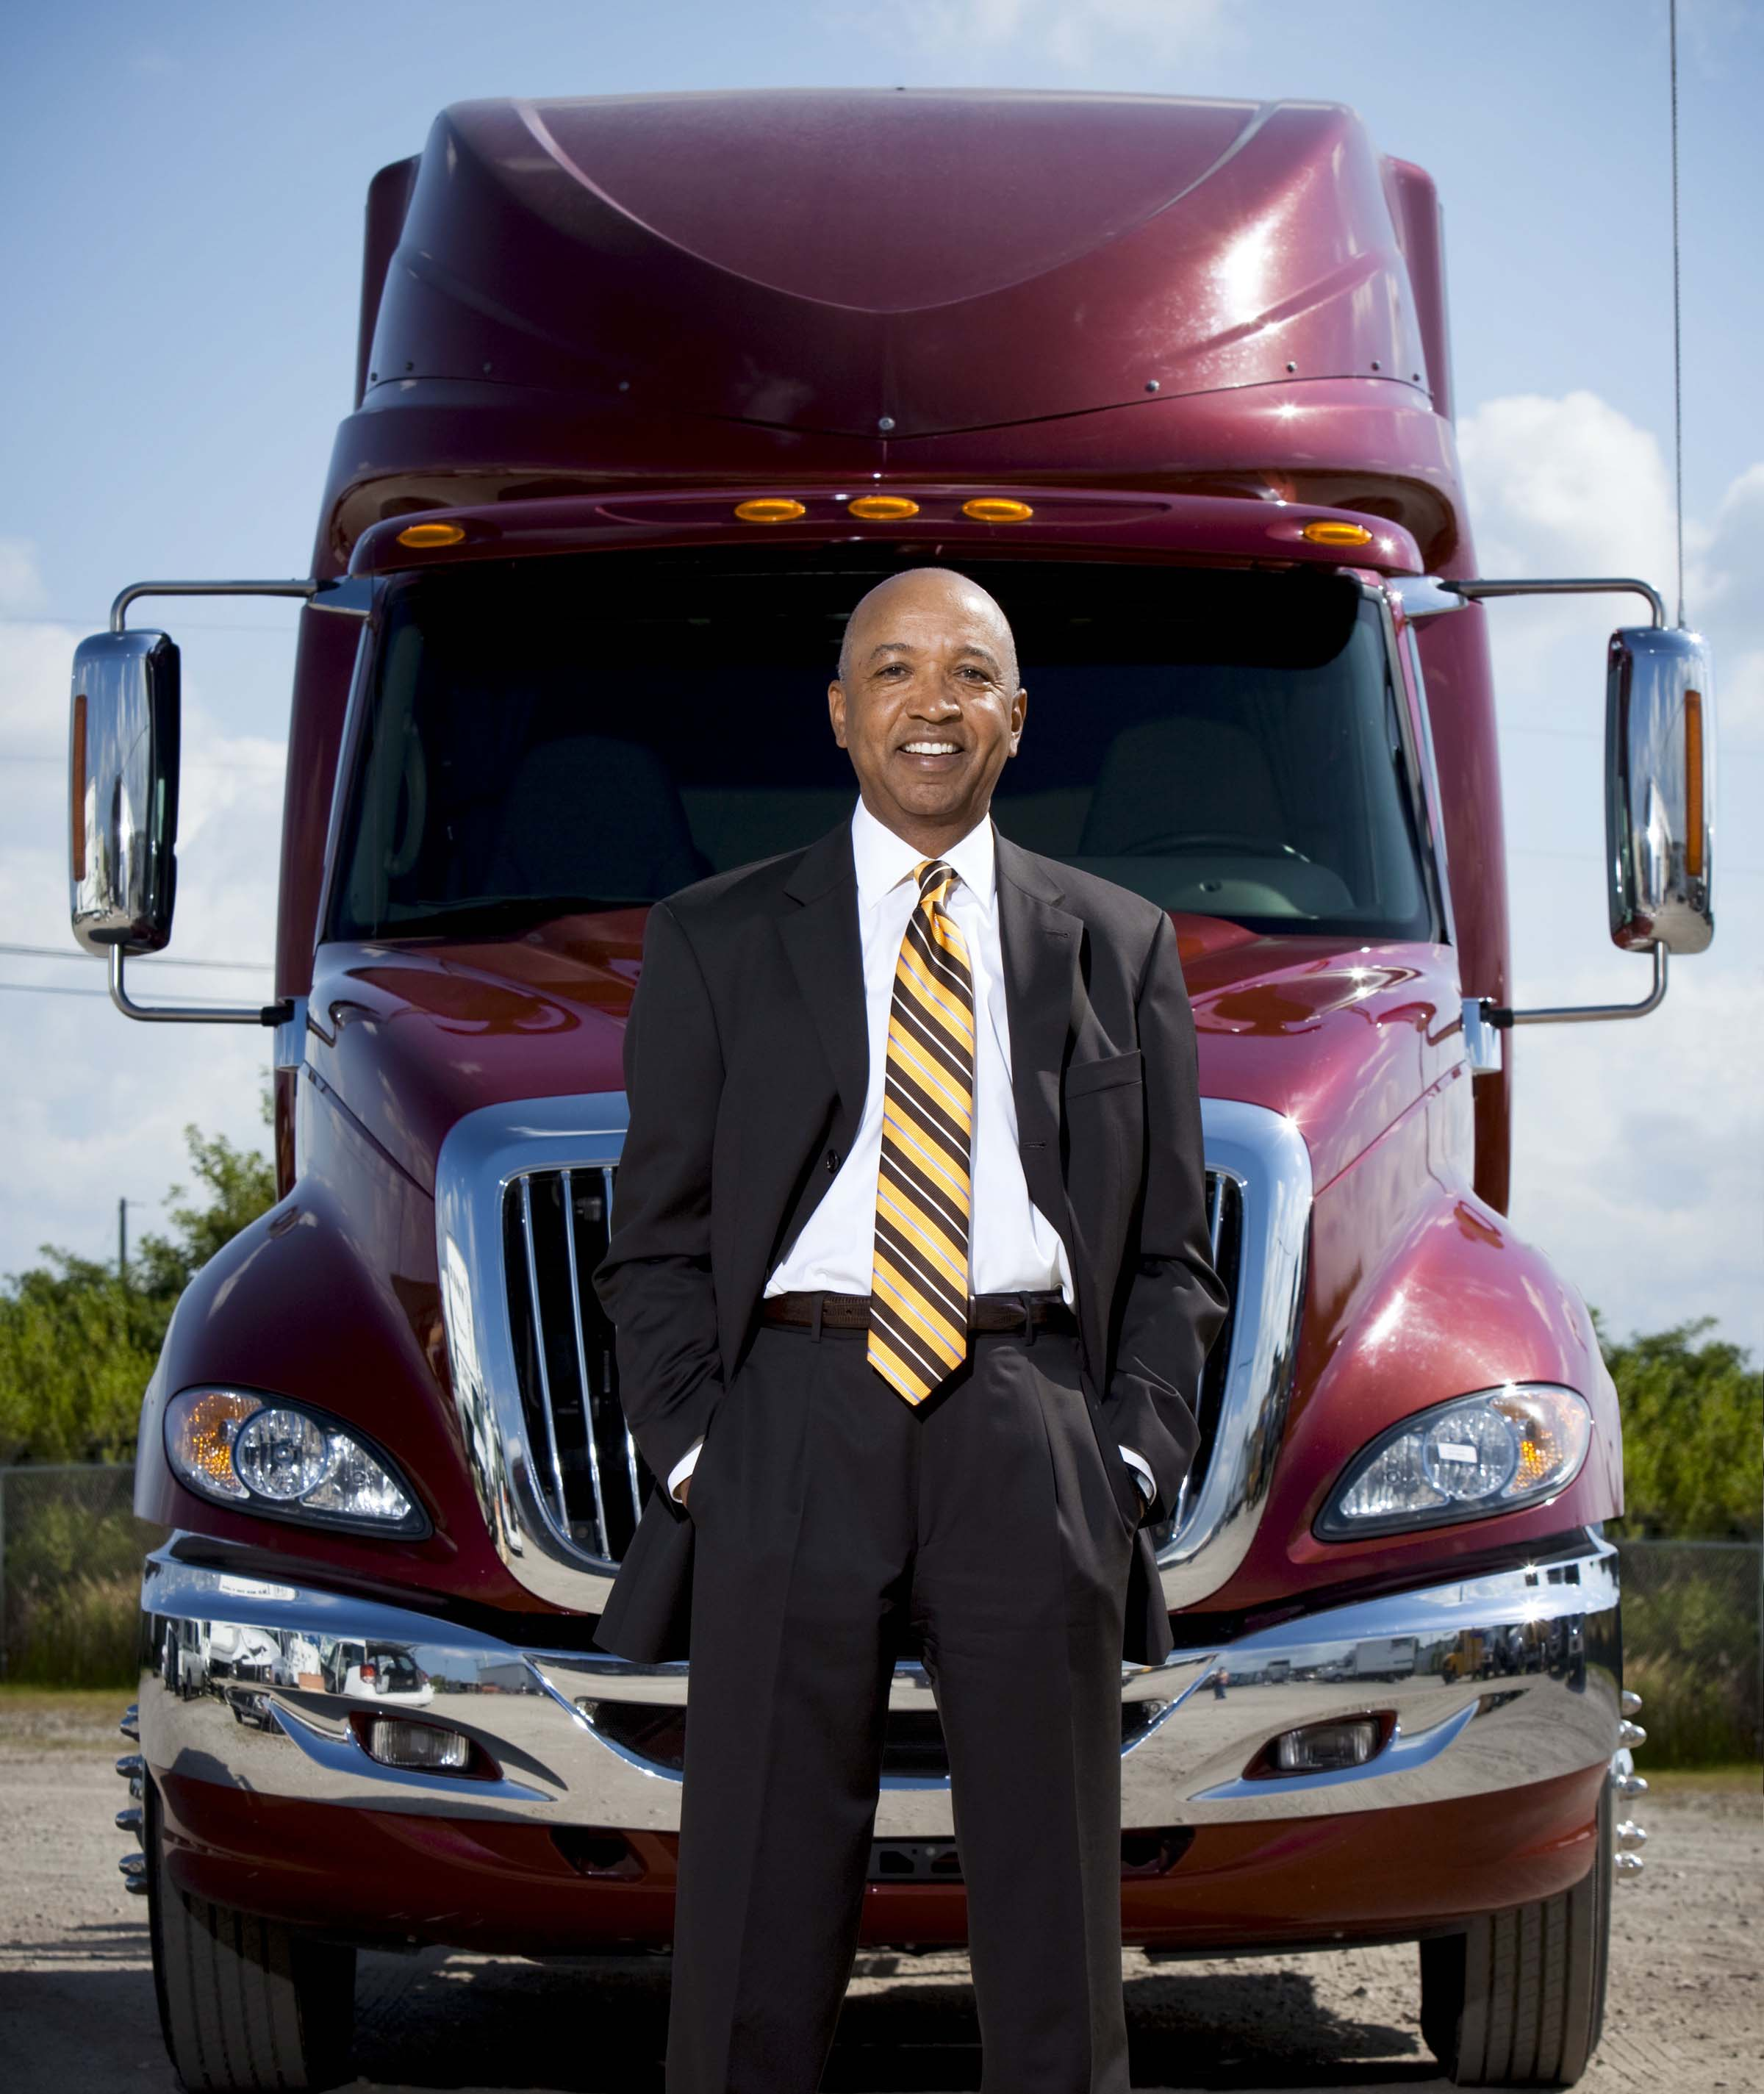 Sun State International Trucking President Oscar Horton (Image: Courtesy of Subject)